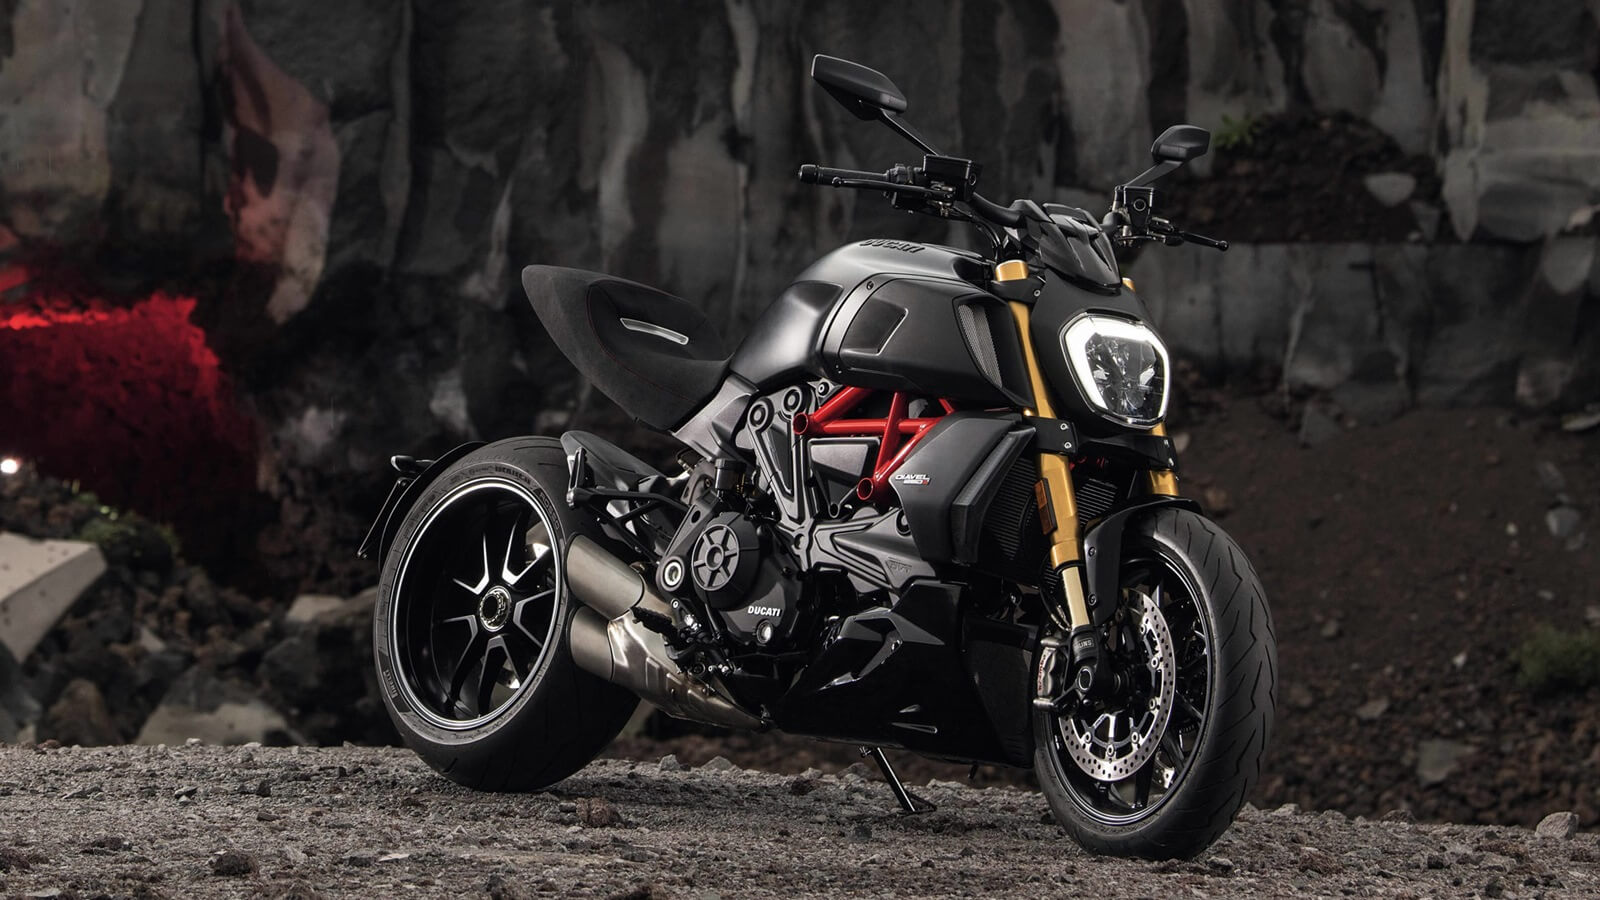 Ducati Diavel 1260 bags Red Dot Design Award for 2019